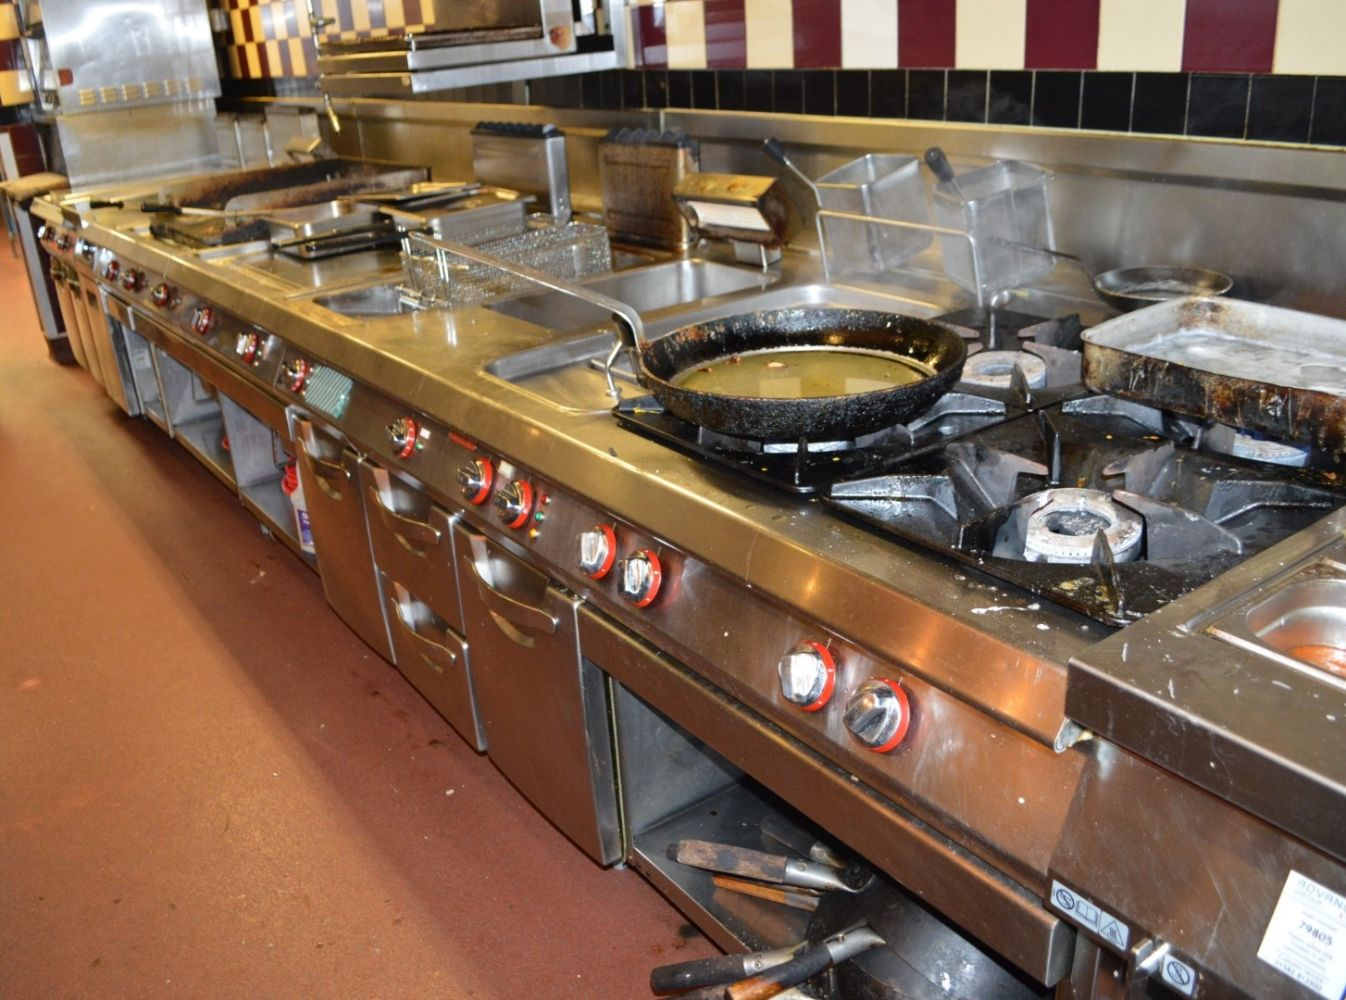 Commercial Catering Sale: Professional Kitchen Equipment, Seating Booths, Lighting, Tables and Chairs, Coffee Machines, Dishwashers and More!